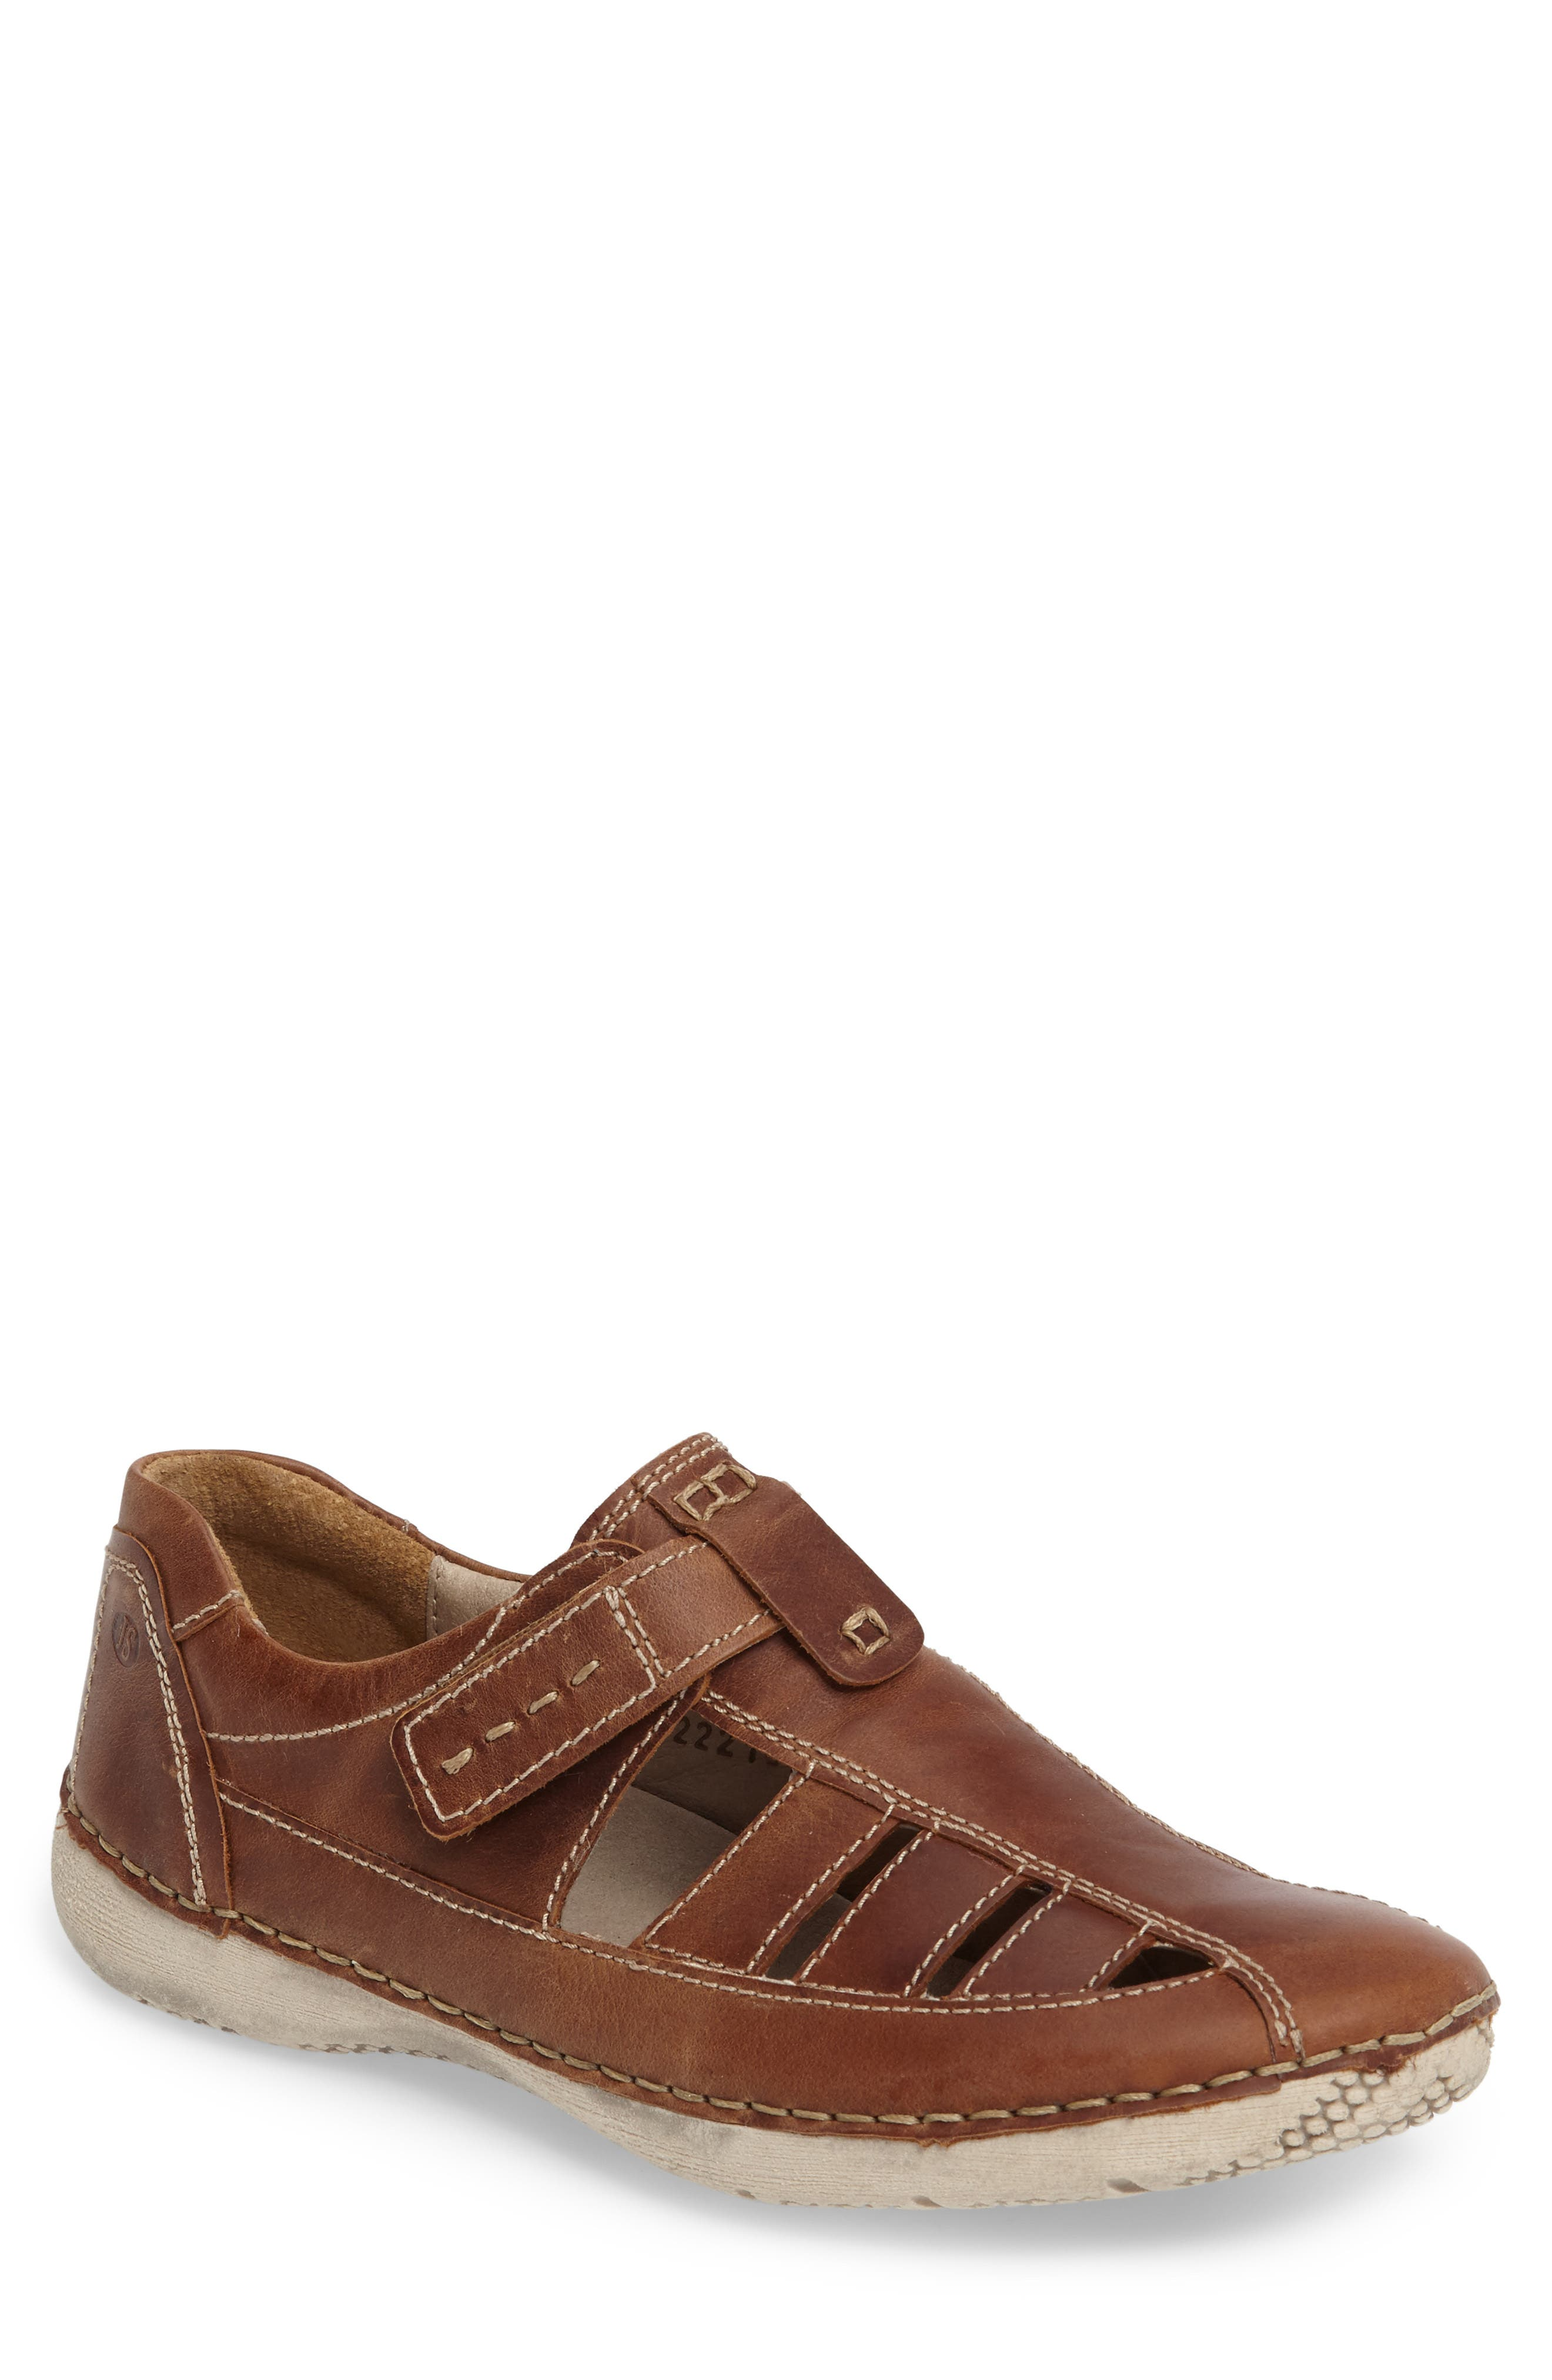 Antje 11 Sneaker,                             Main thumbnail 1, color,                             Castagne Leather